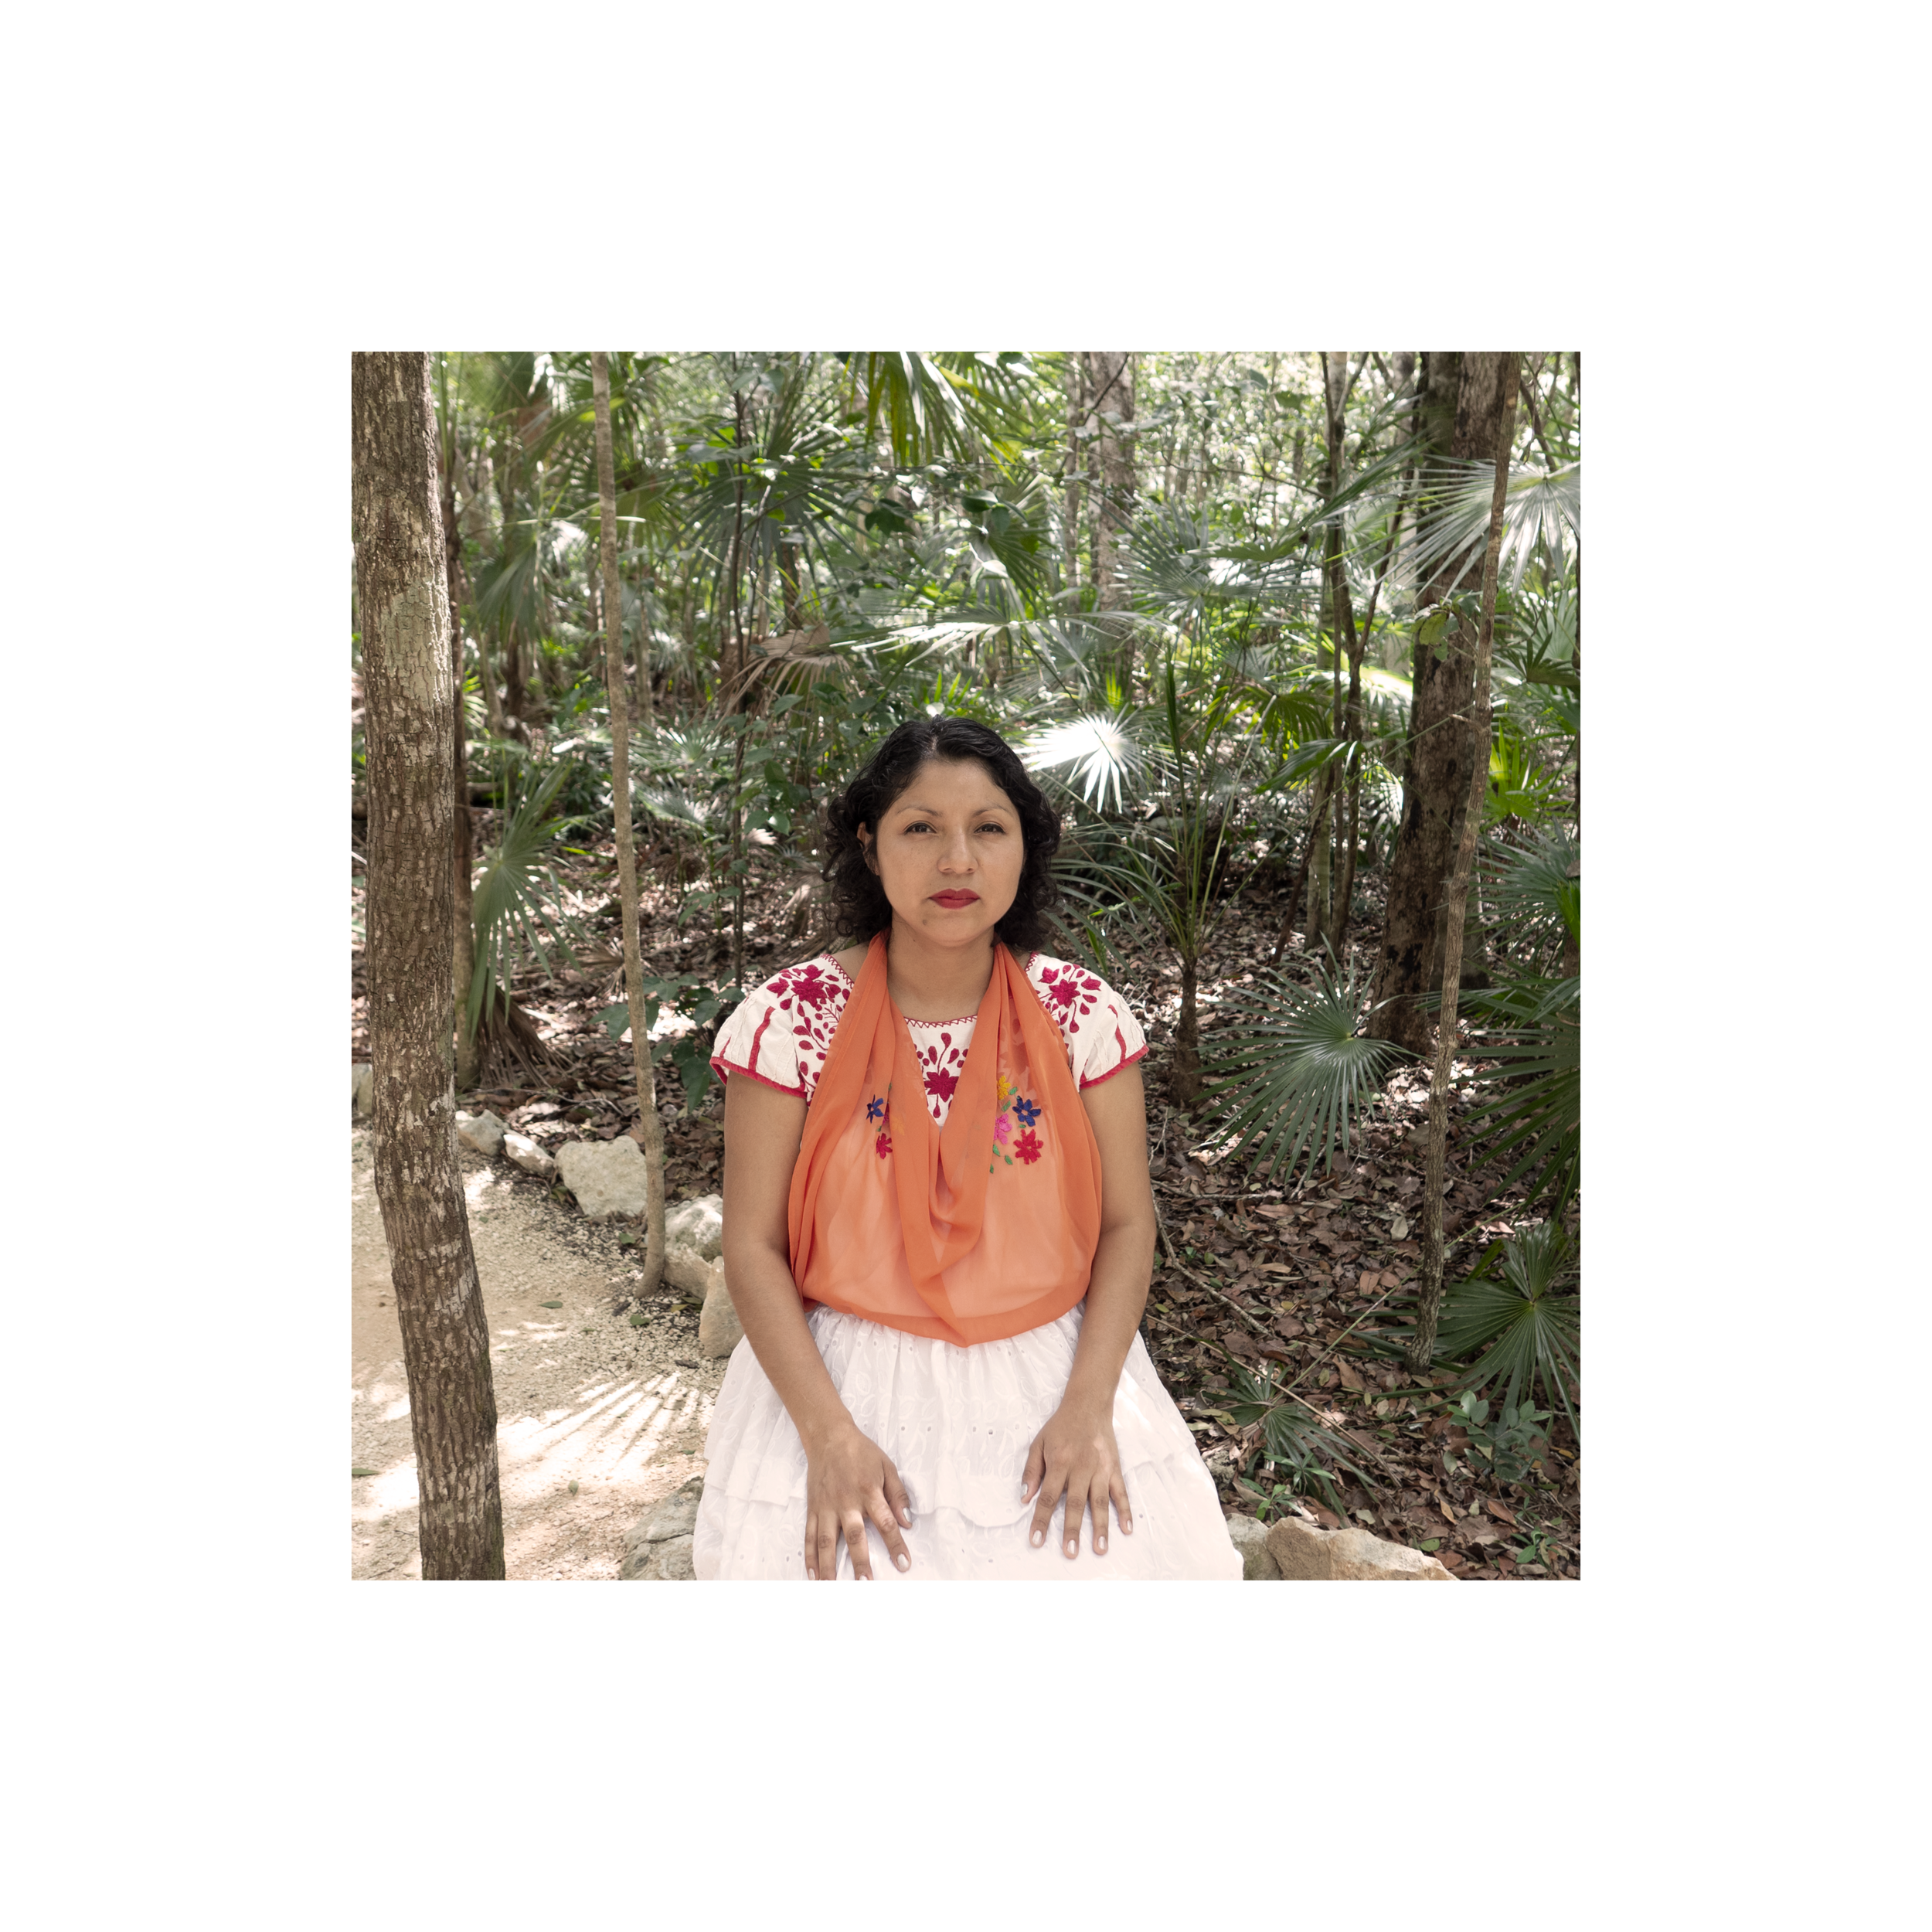 Ana Maria Herrera - Magic beings in sacred spaces, her art shows the colors of the earth and the creative process of a woman, who rescues the oral tradition and knowledge of her people through myths, legends, and customs that are the inheritance of her grandparents as well as the grandparents of the Kantiyan, in Veracruz, turning the stories into images that return us to this universe where everything is possible.